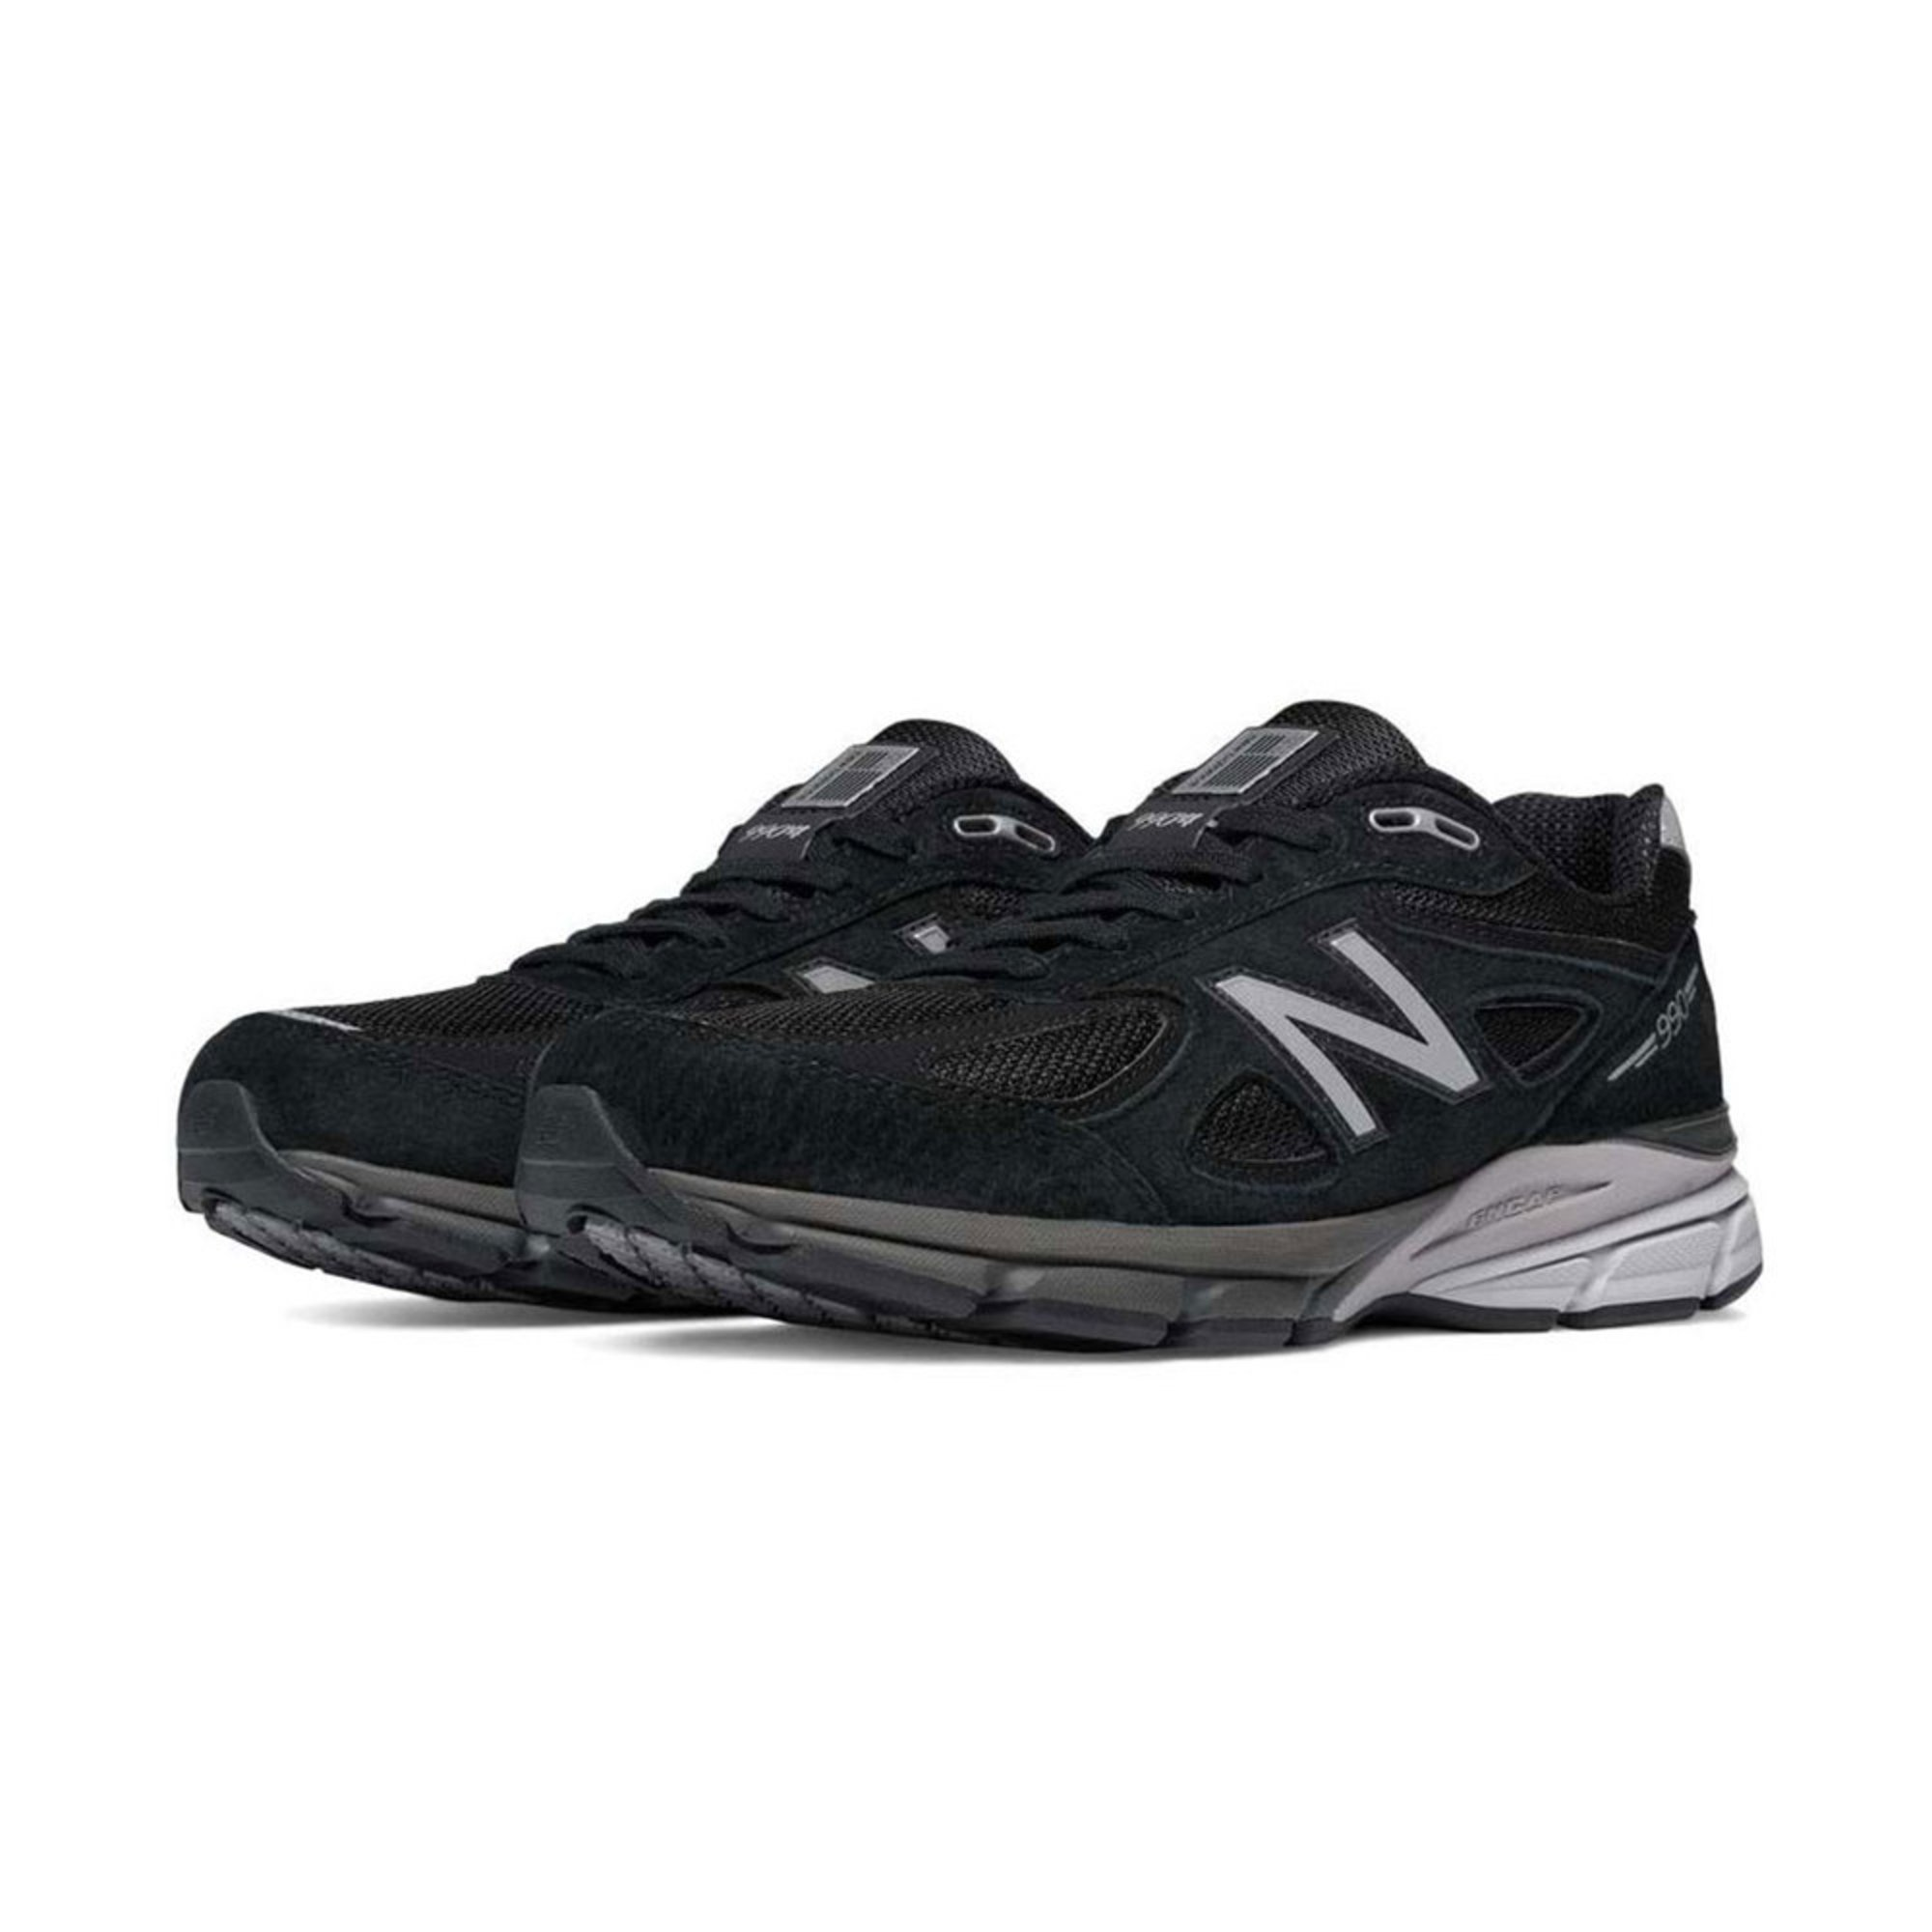 best service 8f395 fcc06 New Balance Men's 990v4 Running Shoe